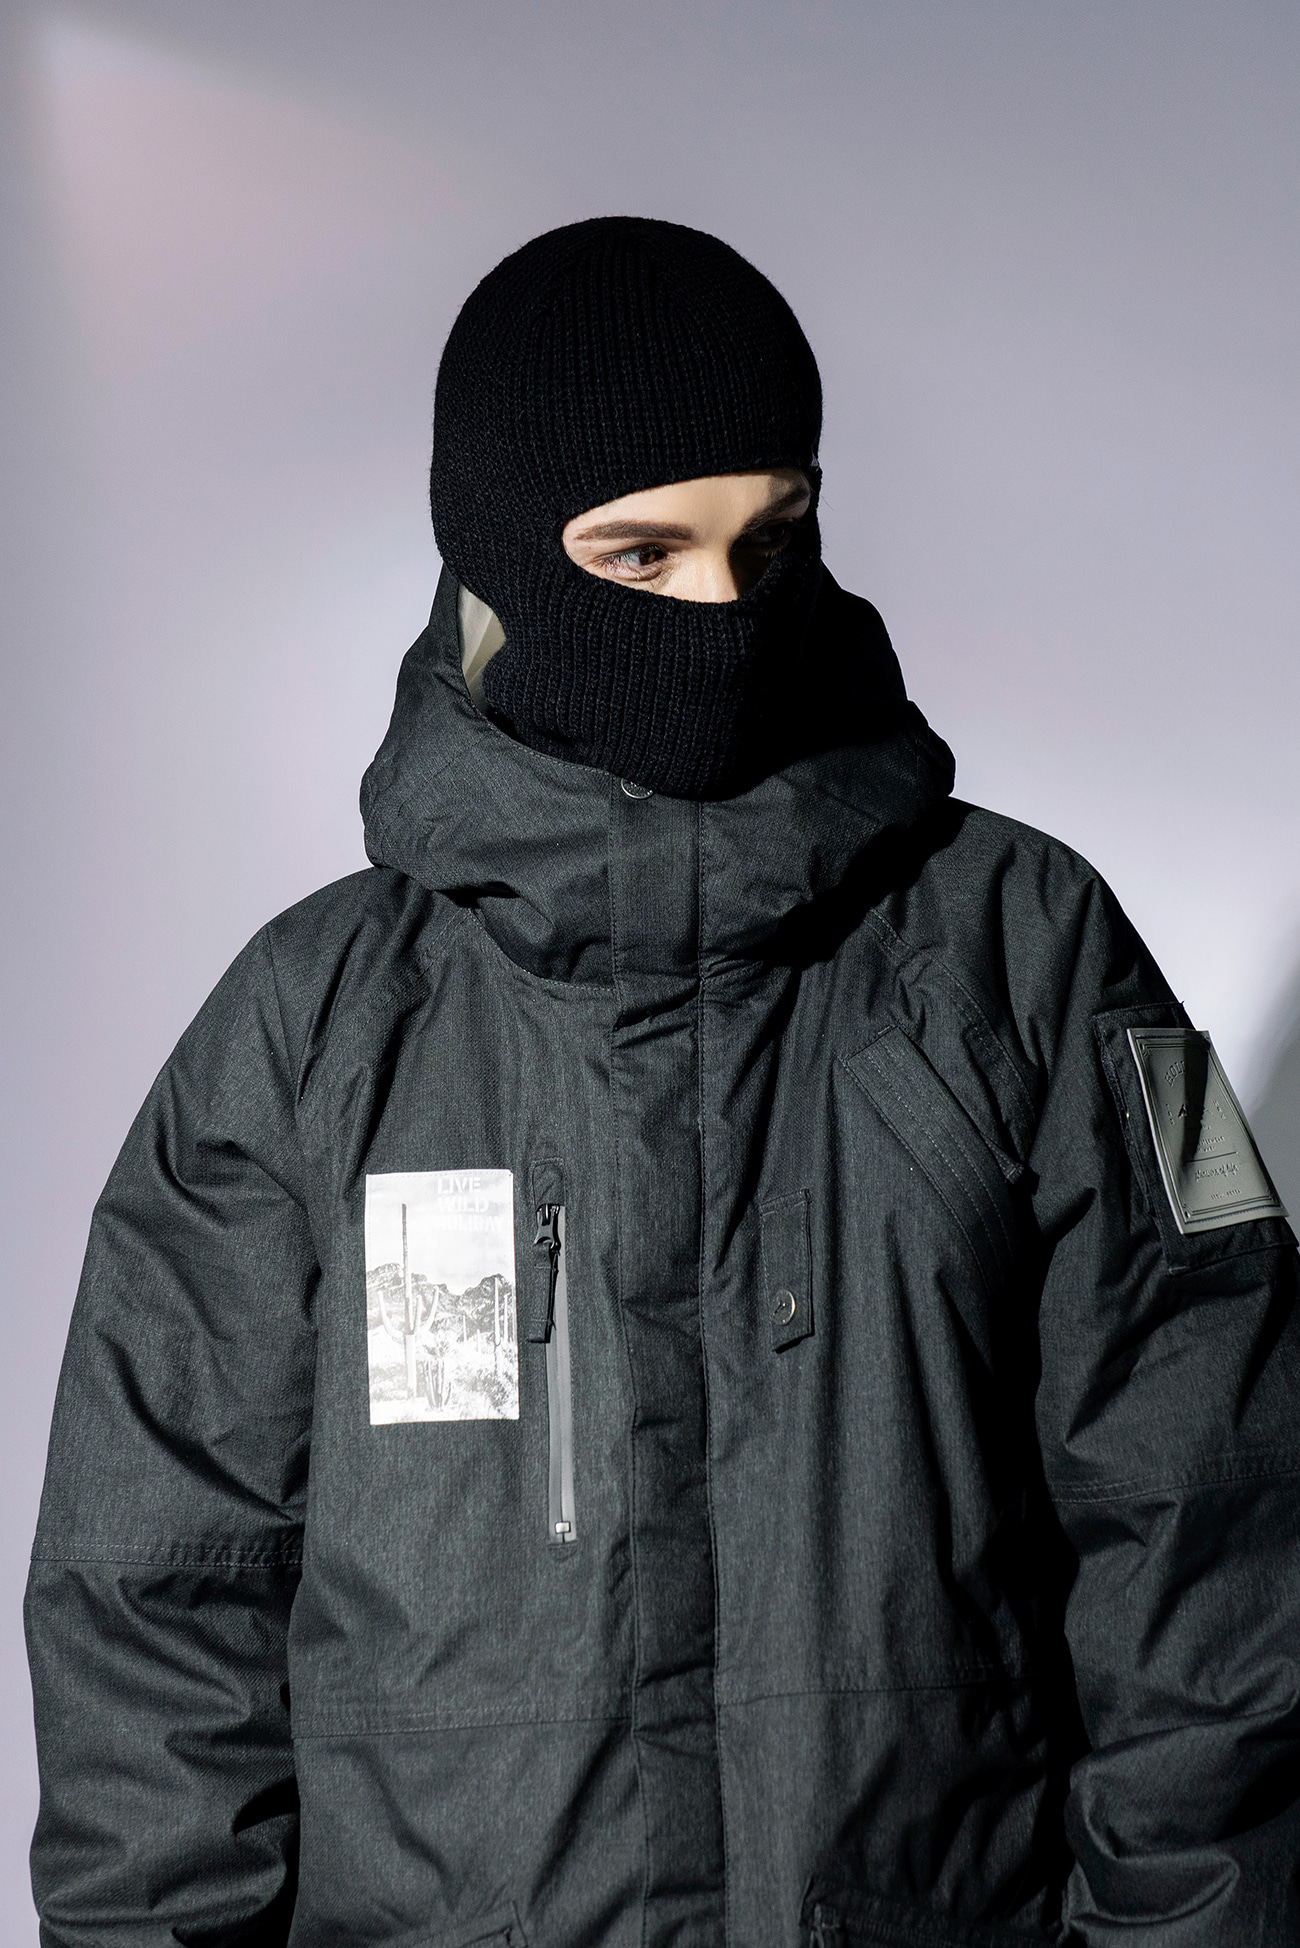 KNIT balaclava -blackHOLIDAY OUTERWEAR